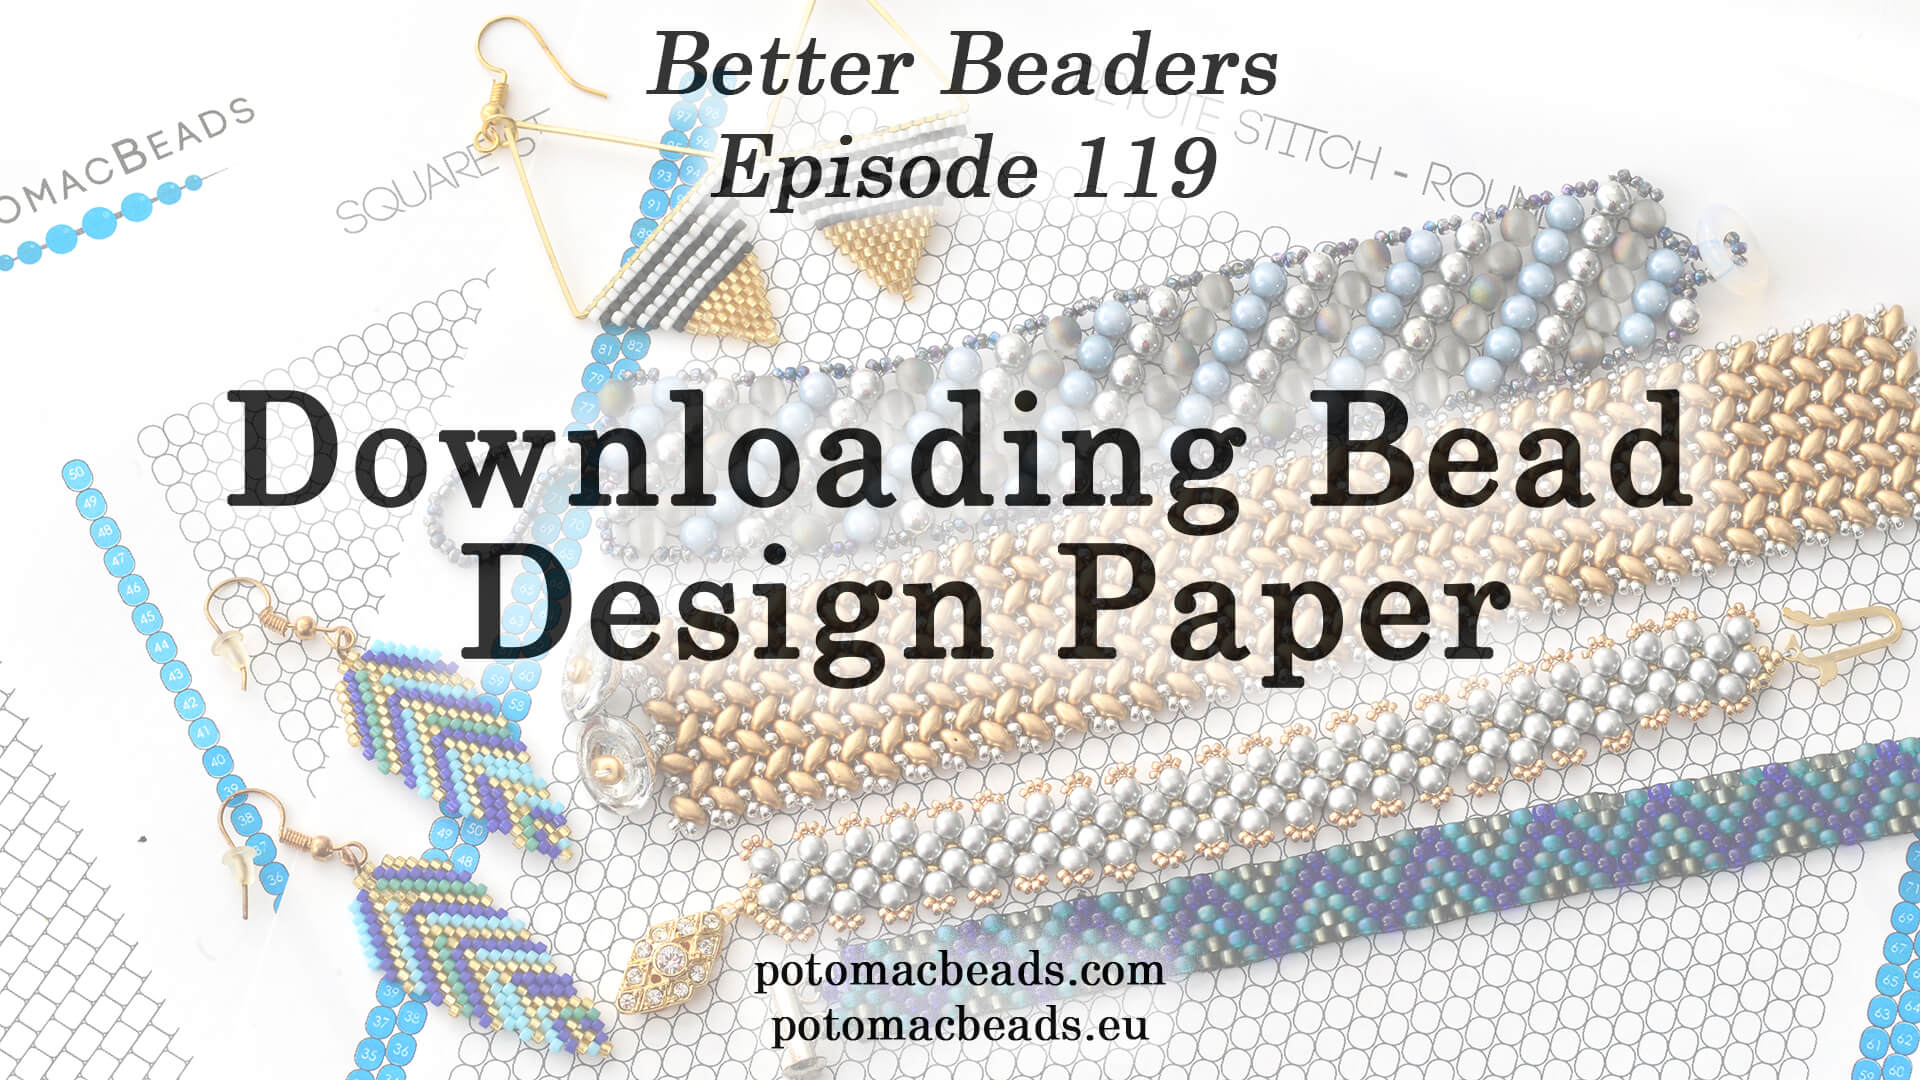 How to Bead / Better Beader Episodes / Better Beader Episode 119 - Downloading Bead Design Paper